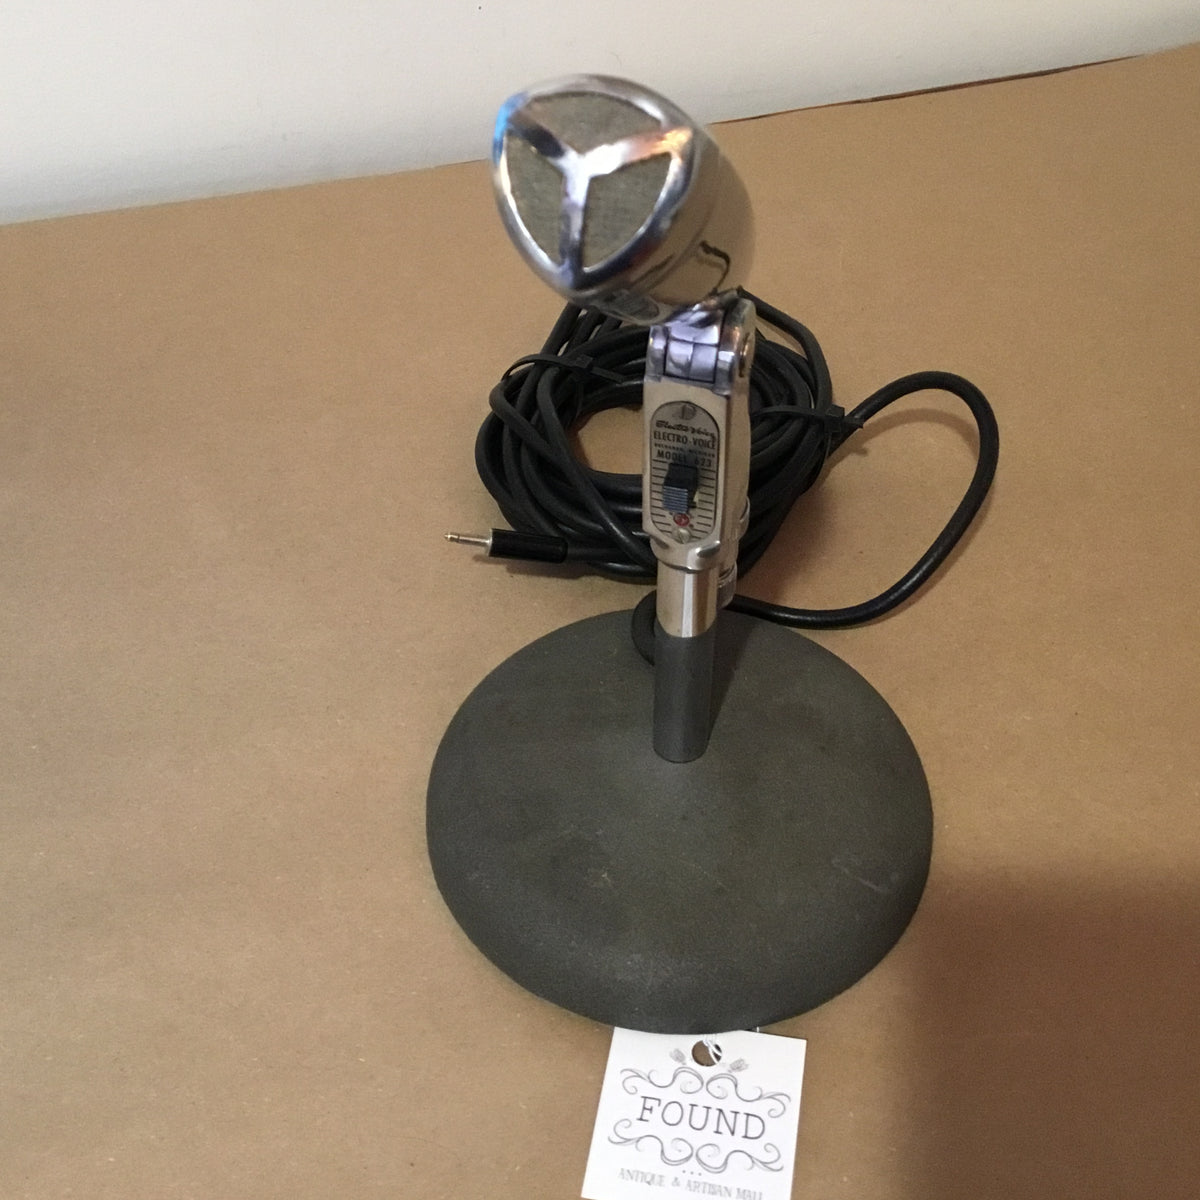 Vintage 1950's Electro-Voice 623 Microphone with Desk Stand